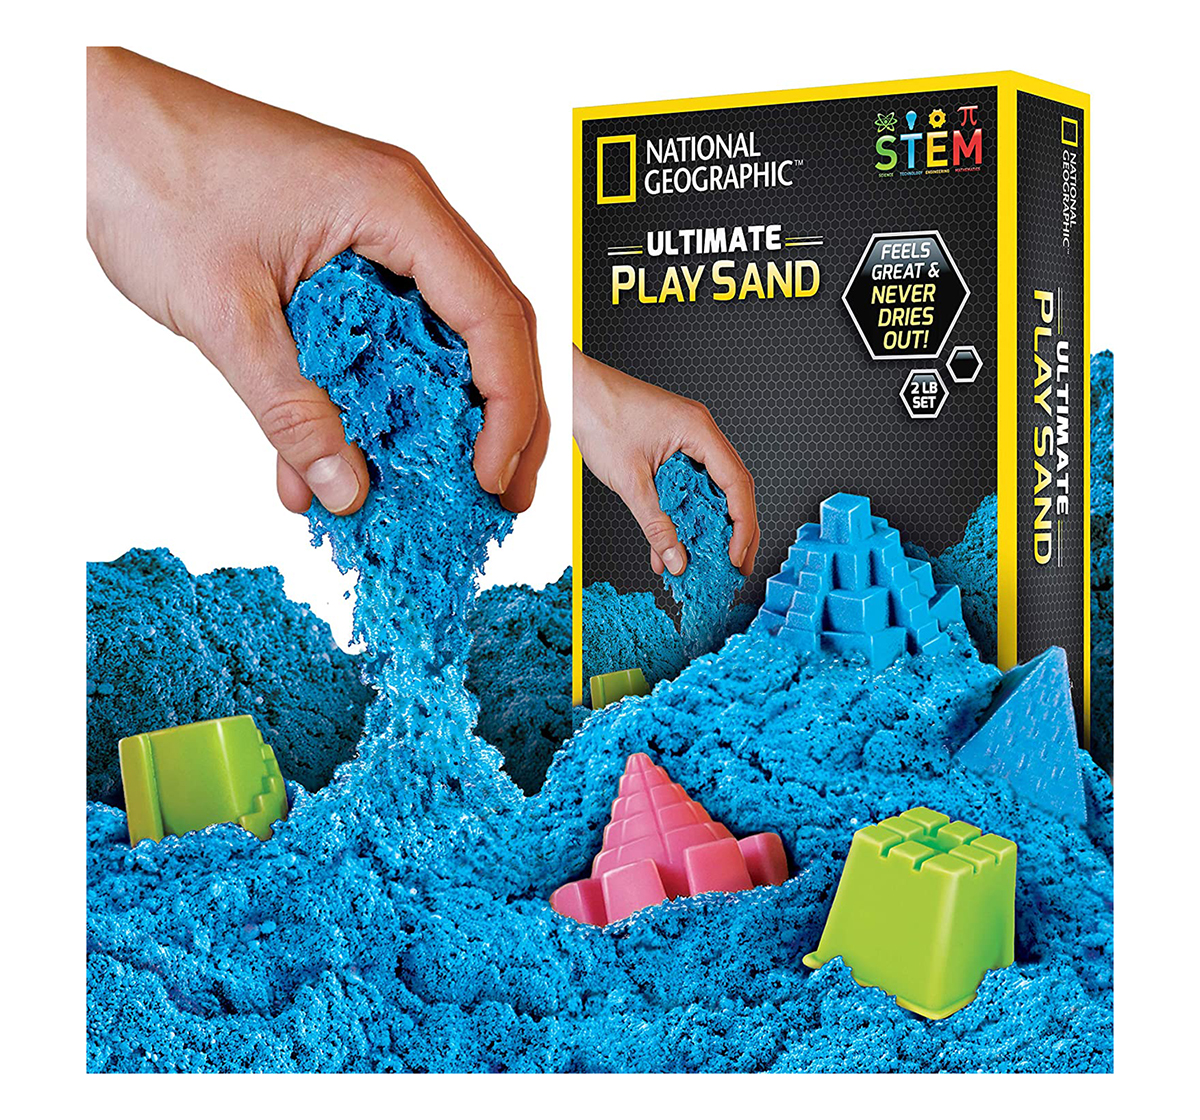 National Geographic   National Geographic 2Lb Sensory Sparkling Play Sand for Kids age 3Y+ (Blue)